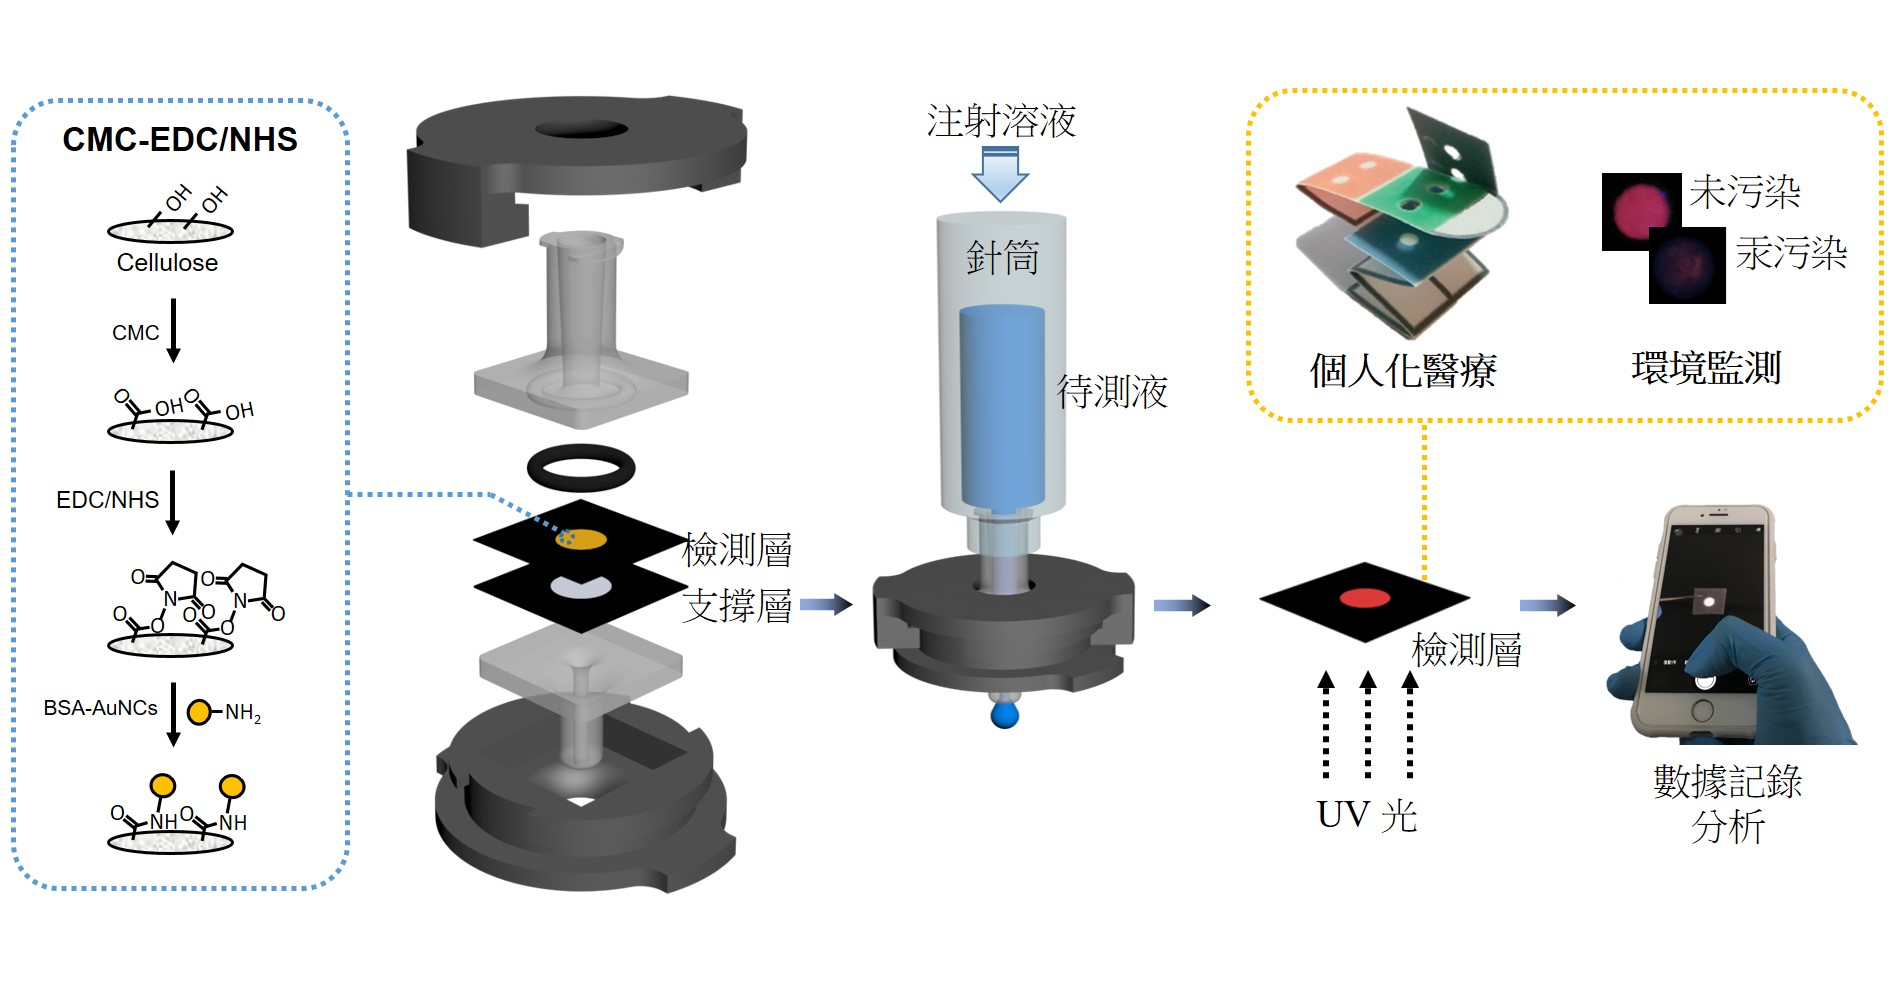 Infectious Disease Diagnosis and Water Quality Monitoring Using Nanomaterials Immobilized Paper and a Flow Controllable Microfluidic Device